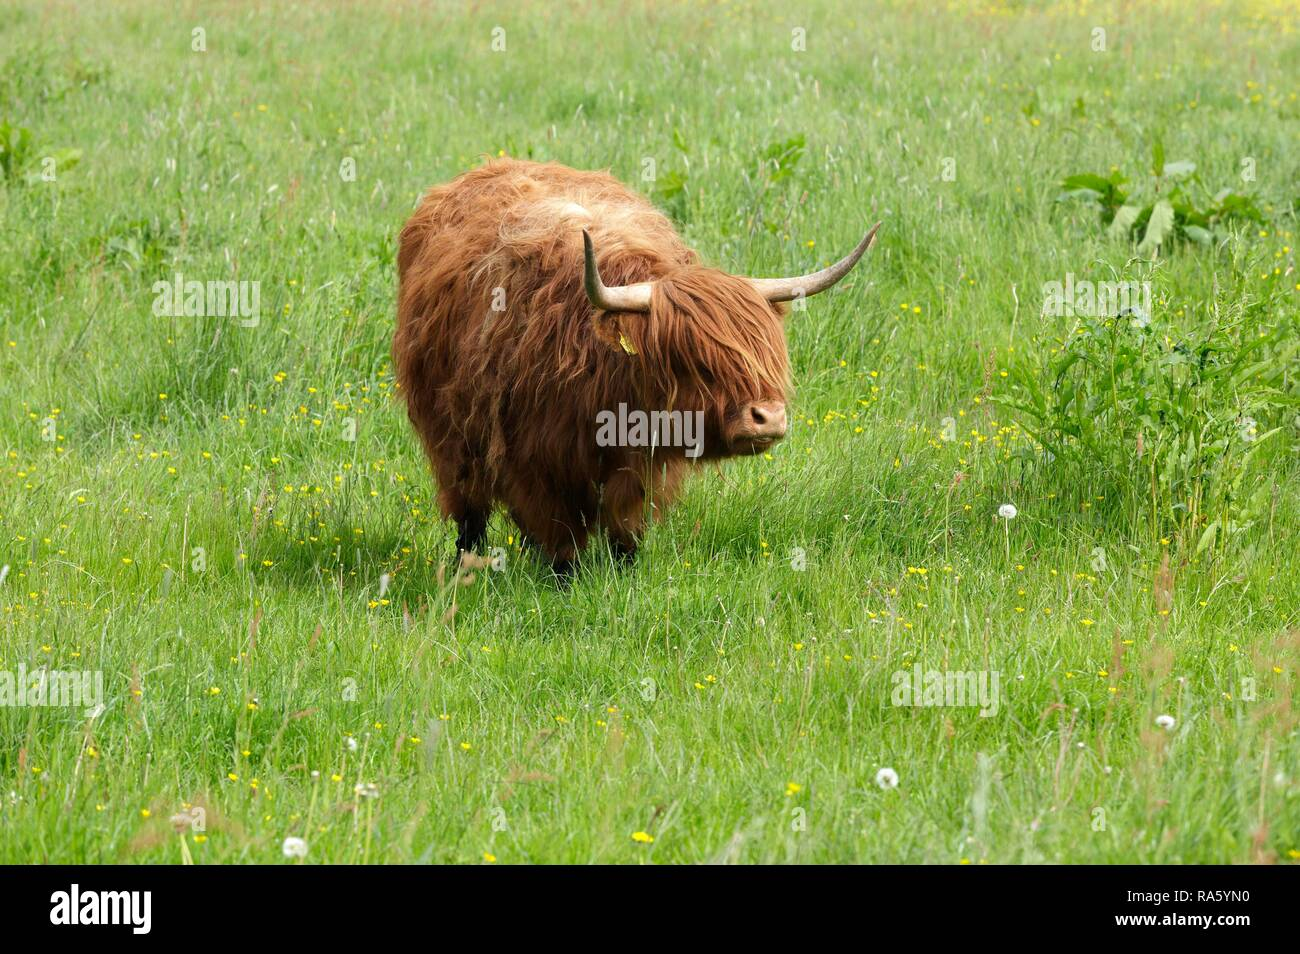 Highland cattle standing in a meadow, Haithabu, Schleswig-Holstein, Germany - Stock Image